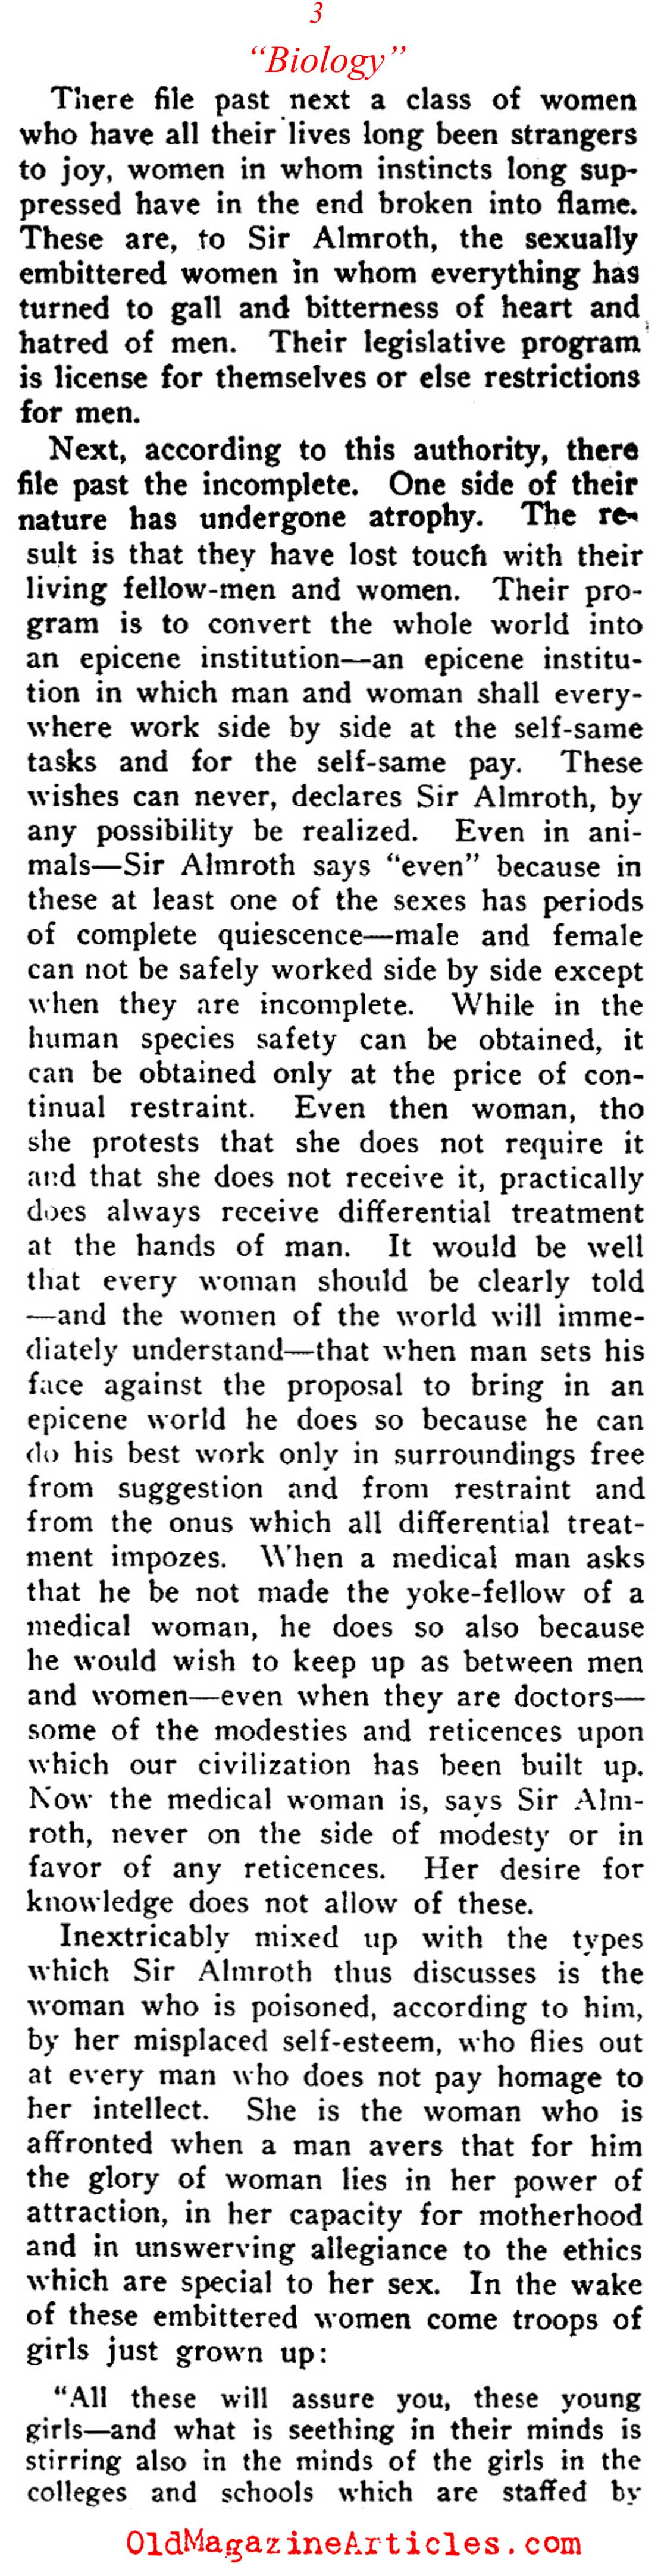 Scientific Proof  That Women Should Not Be Allowed to Vote (Current Opinion, 1912)